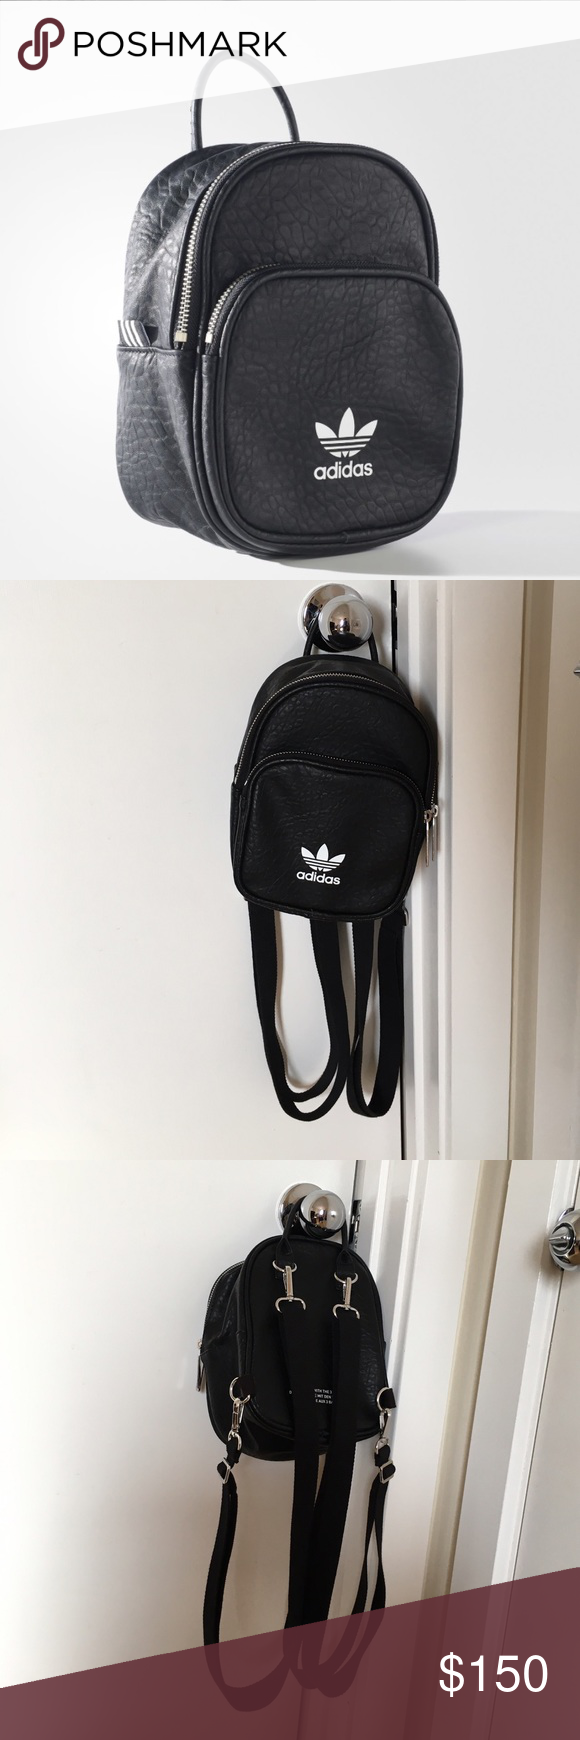 6c9a872b56 Adidas Classic Mini Backpack Sold out everywhere Adidas mini backpack.  Price reflects that. Please